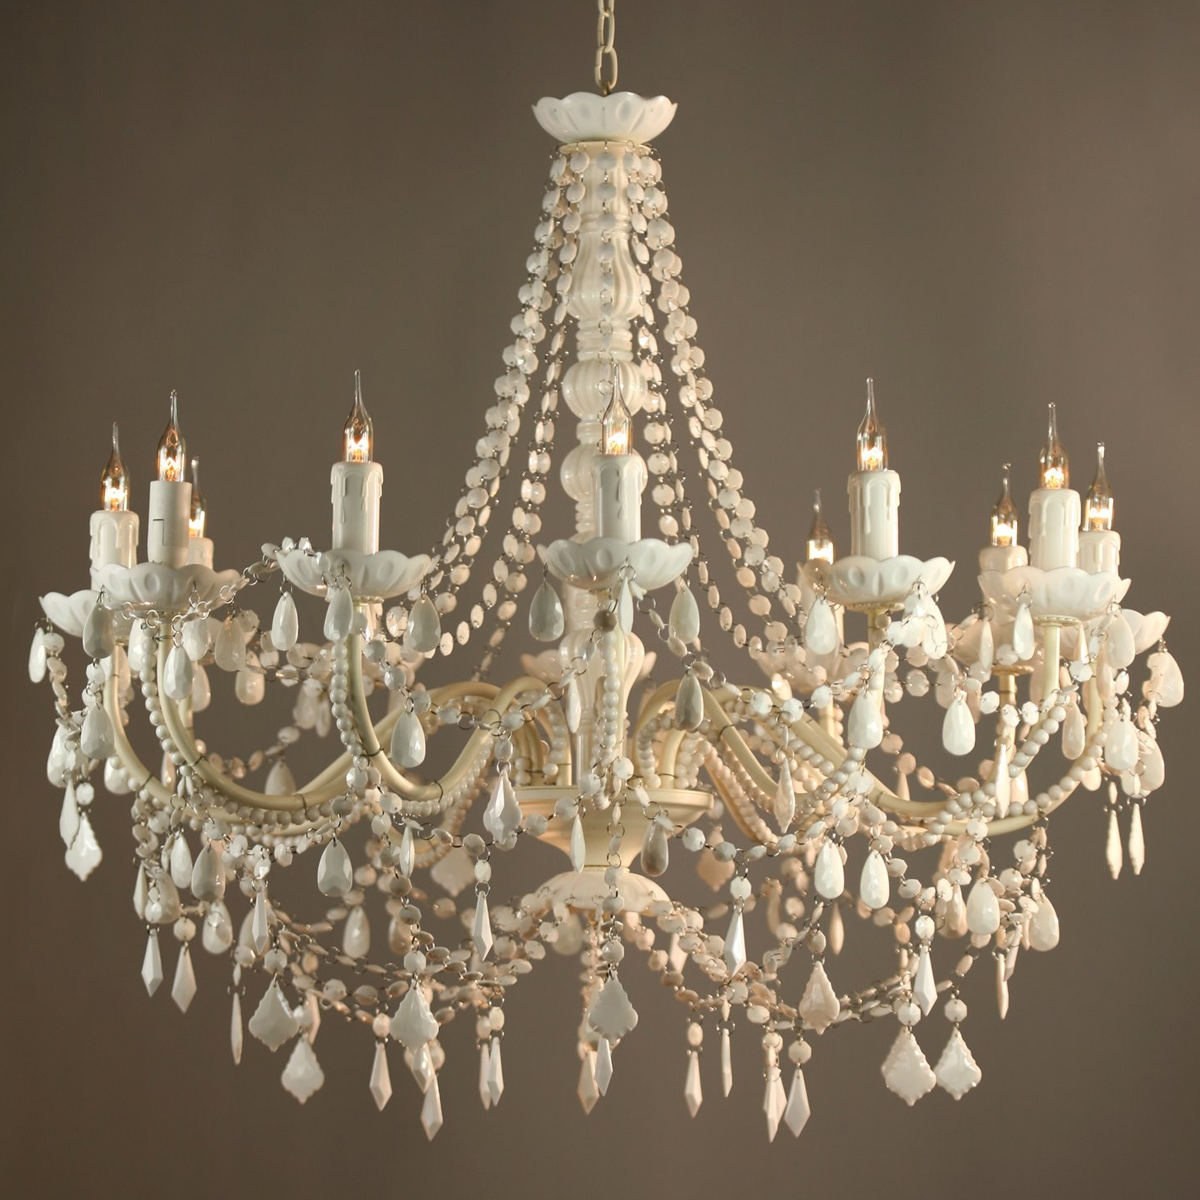 12 ideas of french chandeliers aloadofball Gallery